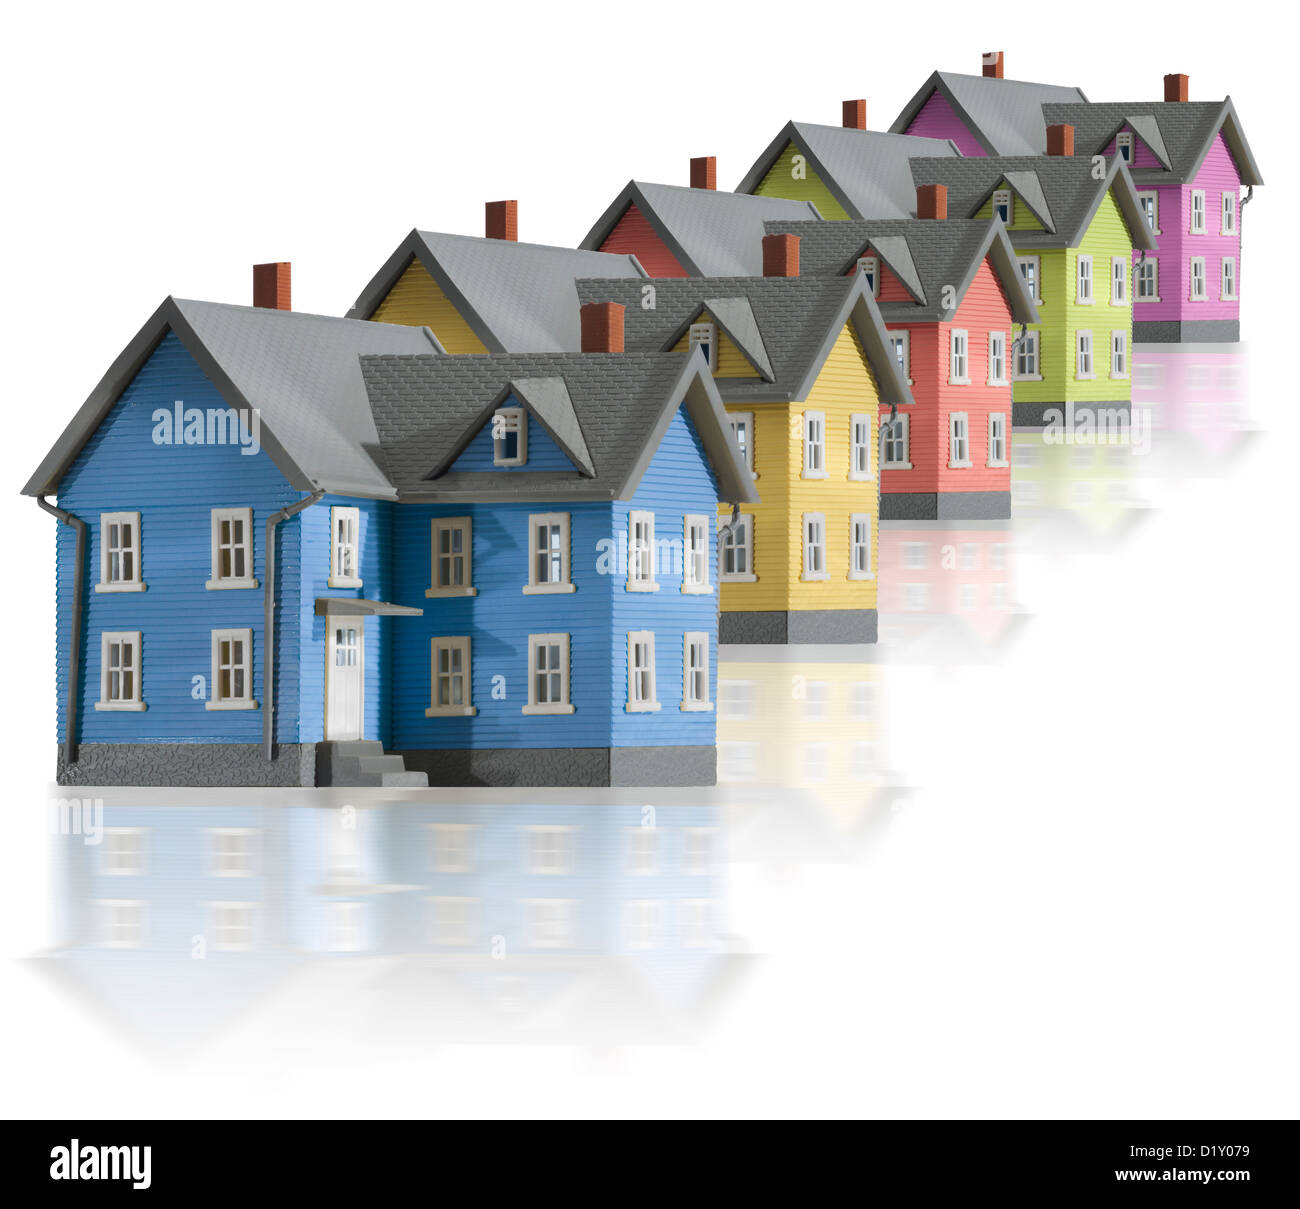 Houses in a vertical row - Stock Image